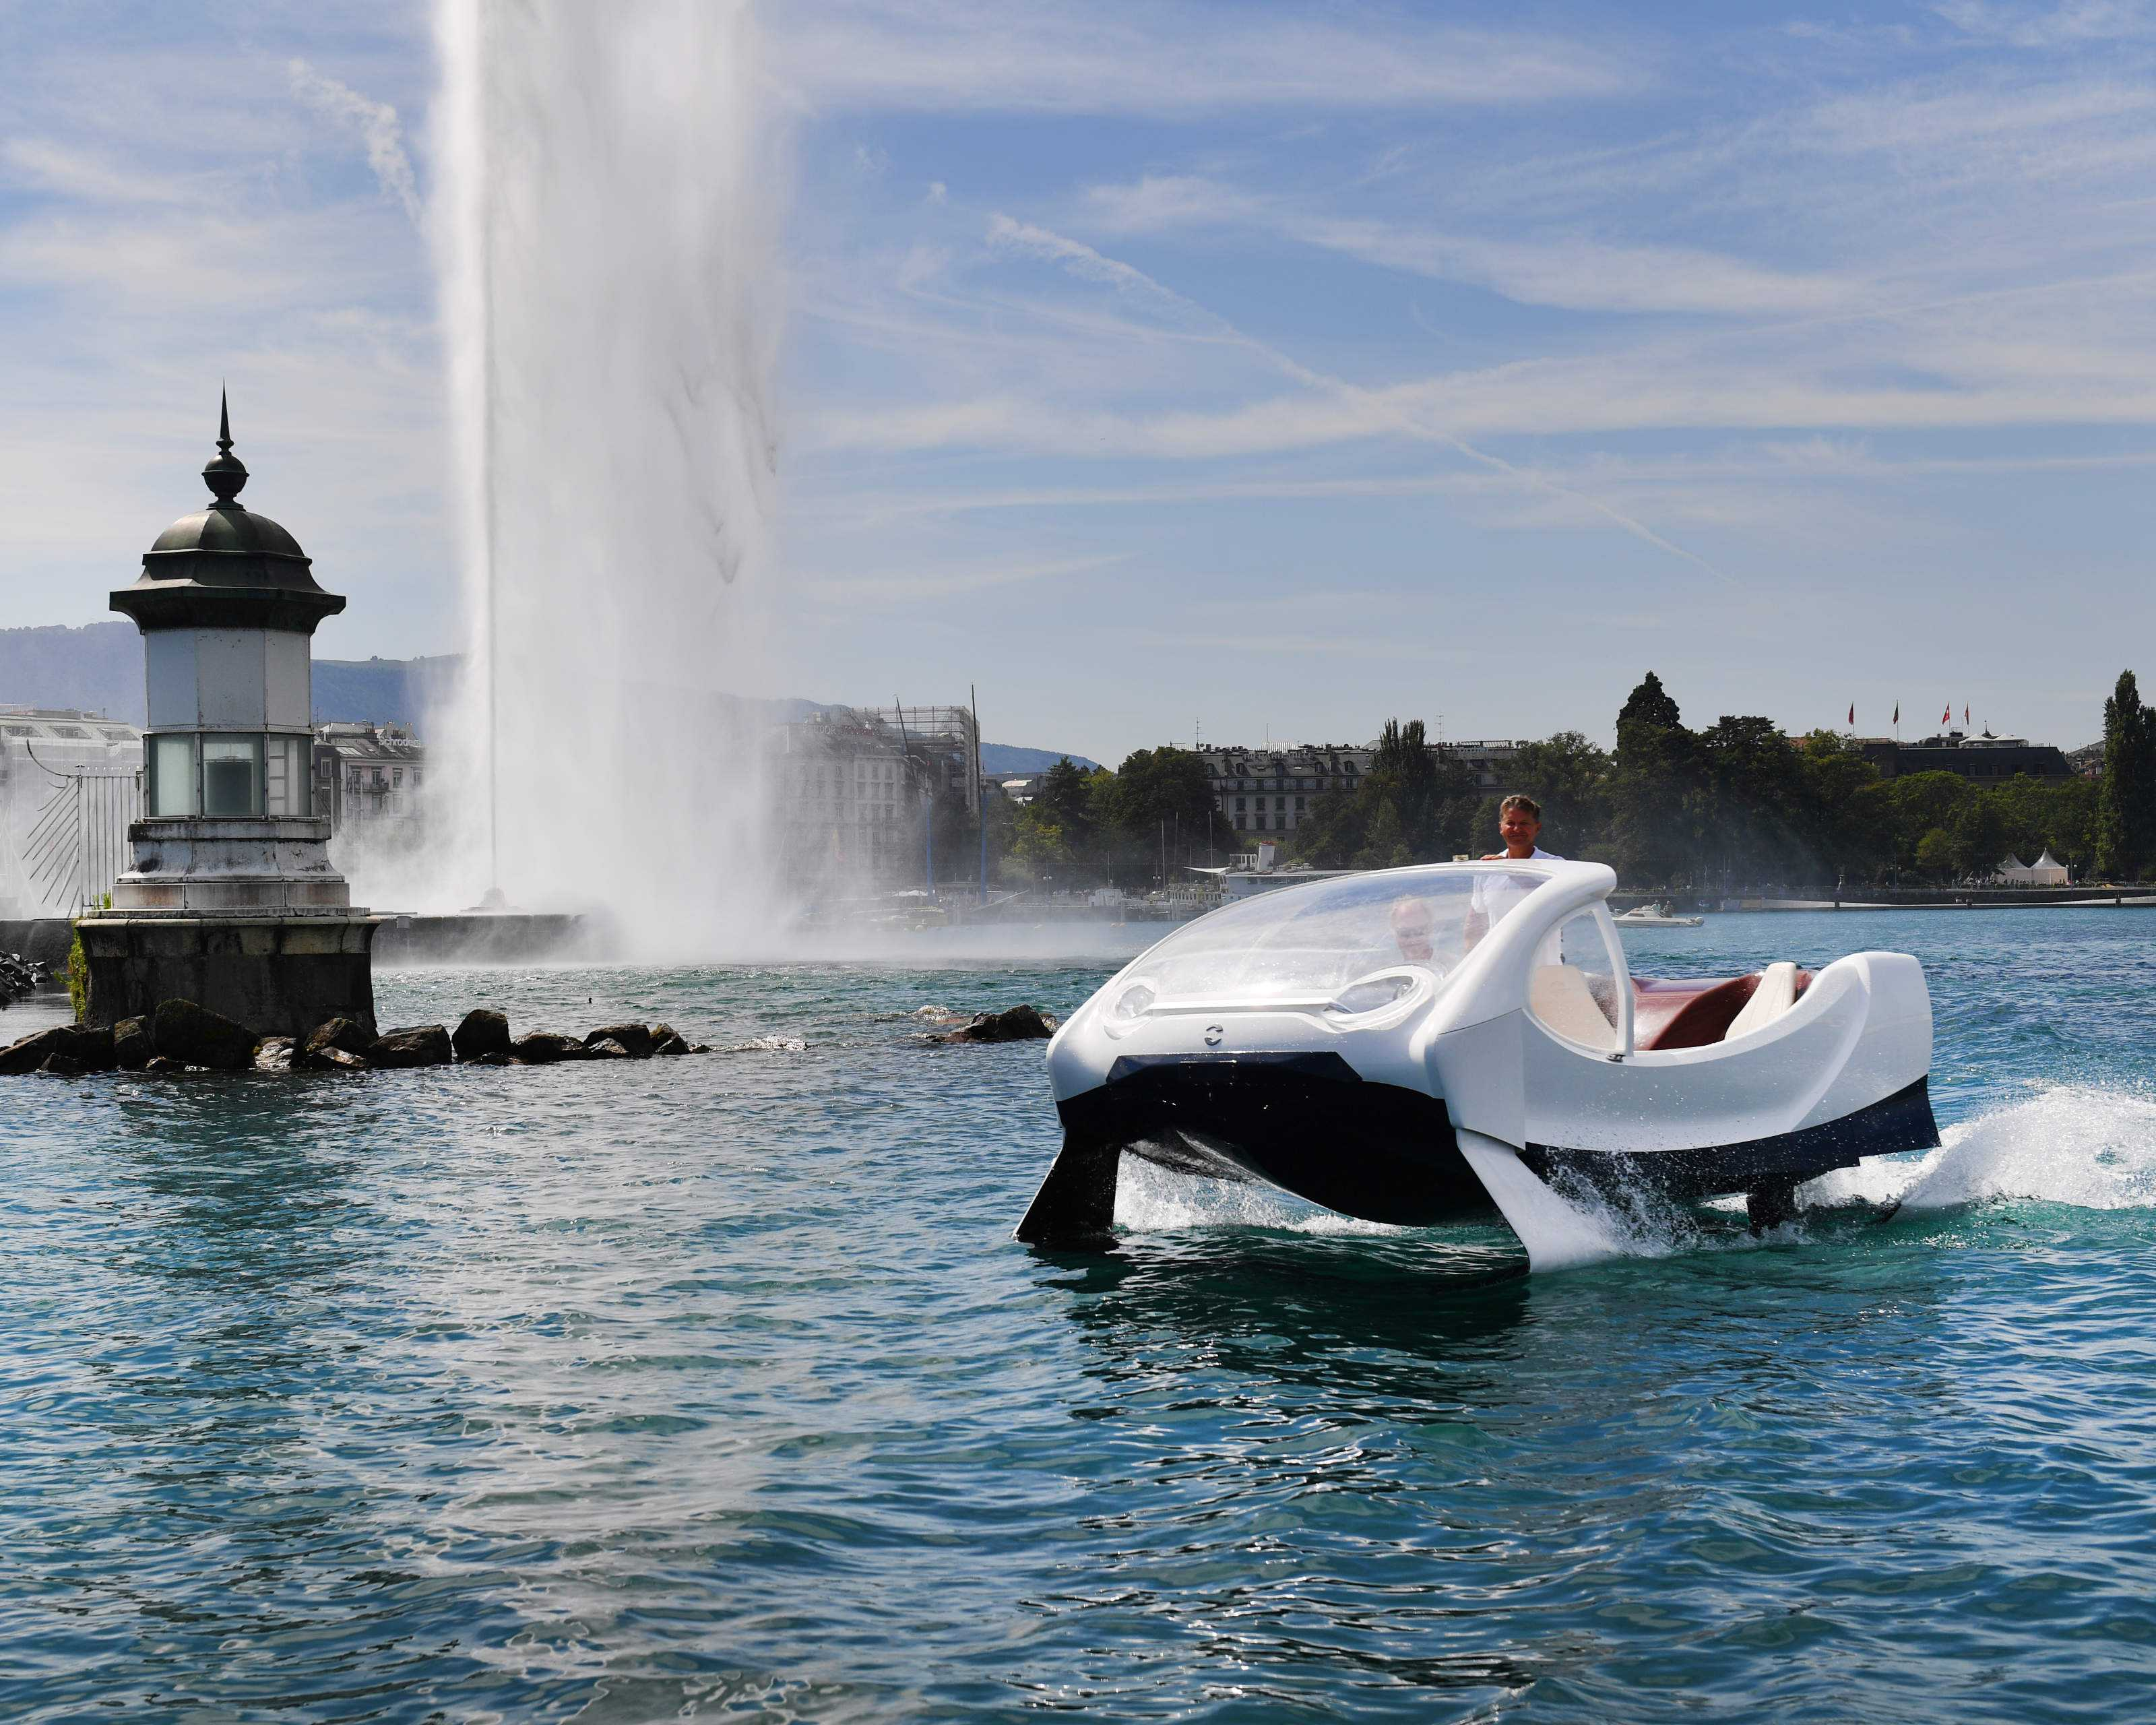 BG_SeaBubbles_Geneve_1_ThierryParel_LeTemps | © Thierry Parel / Le Temps